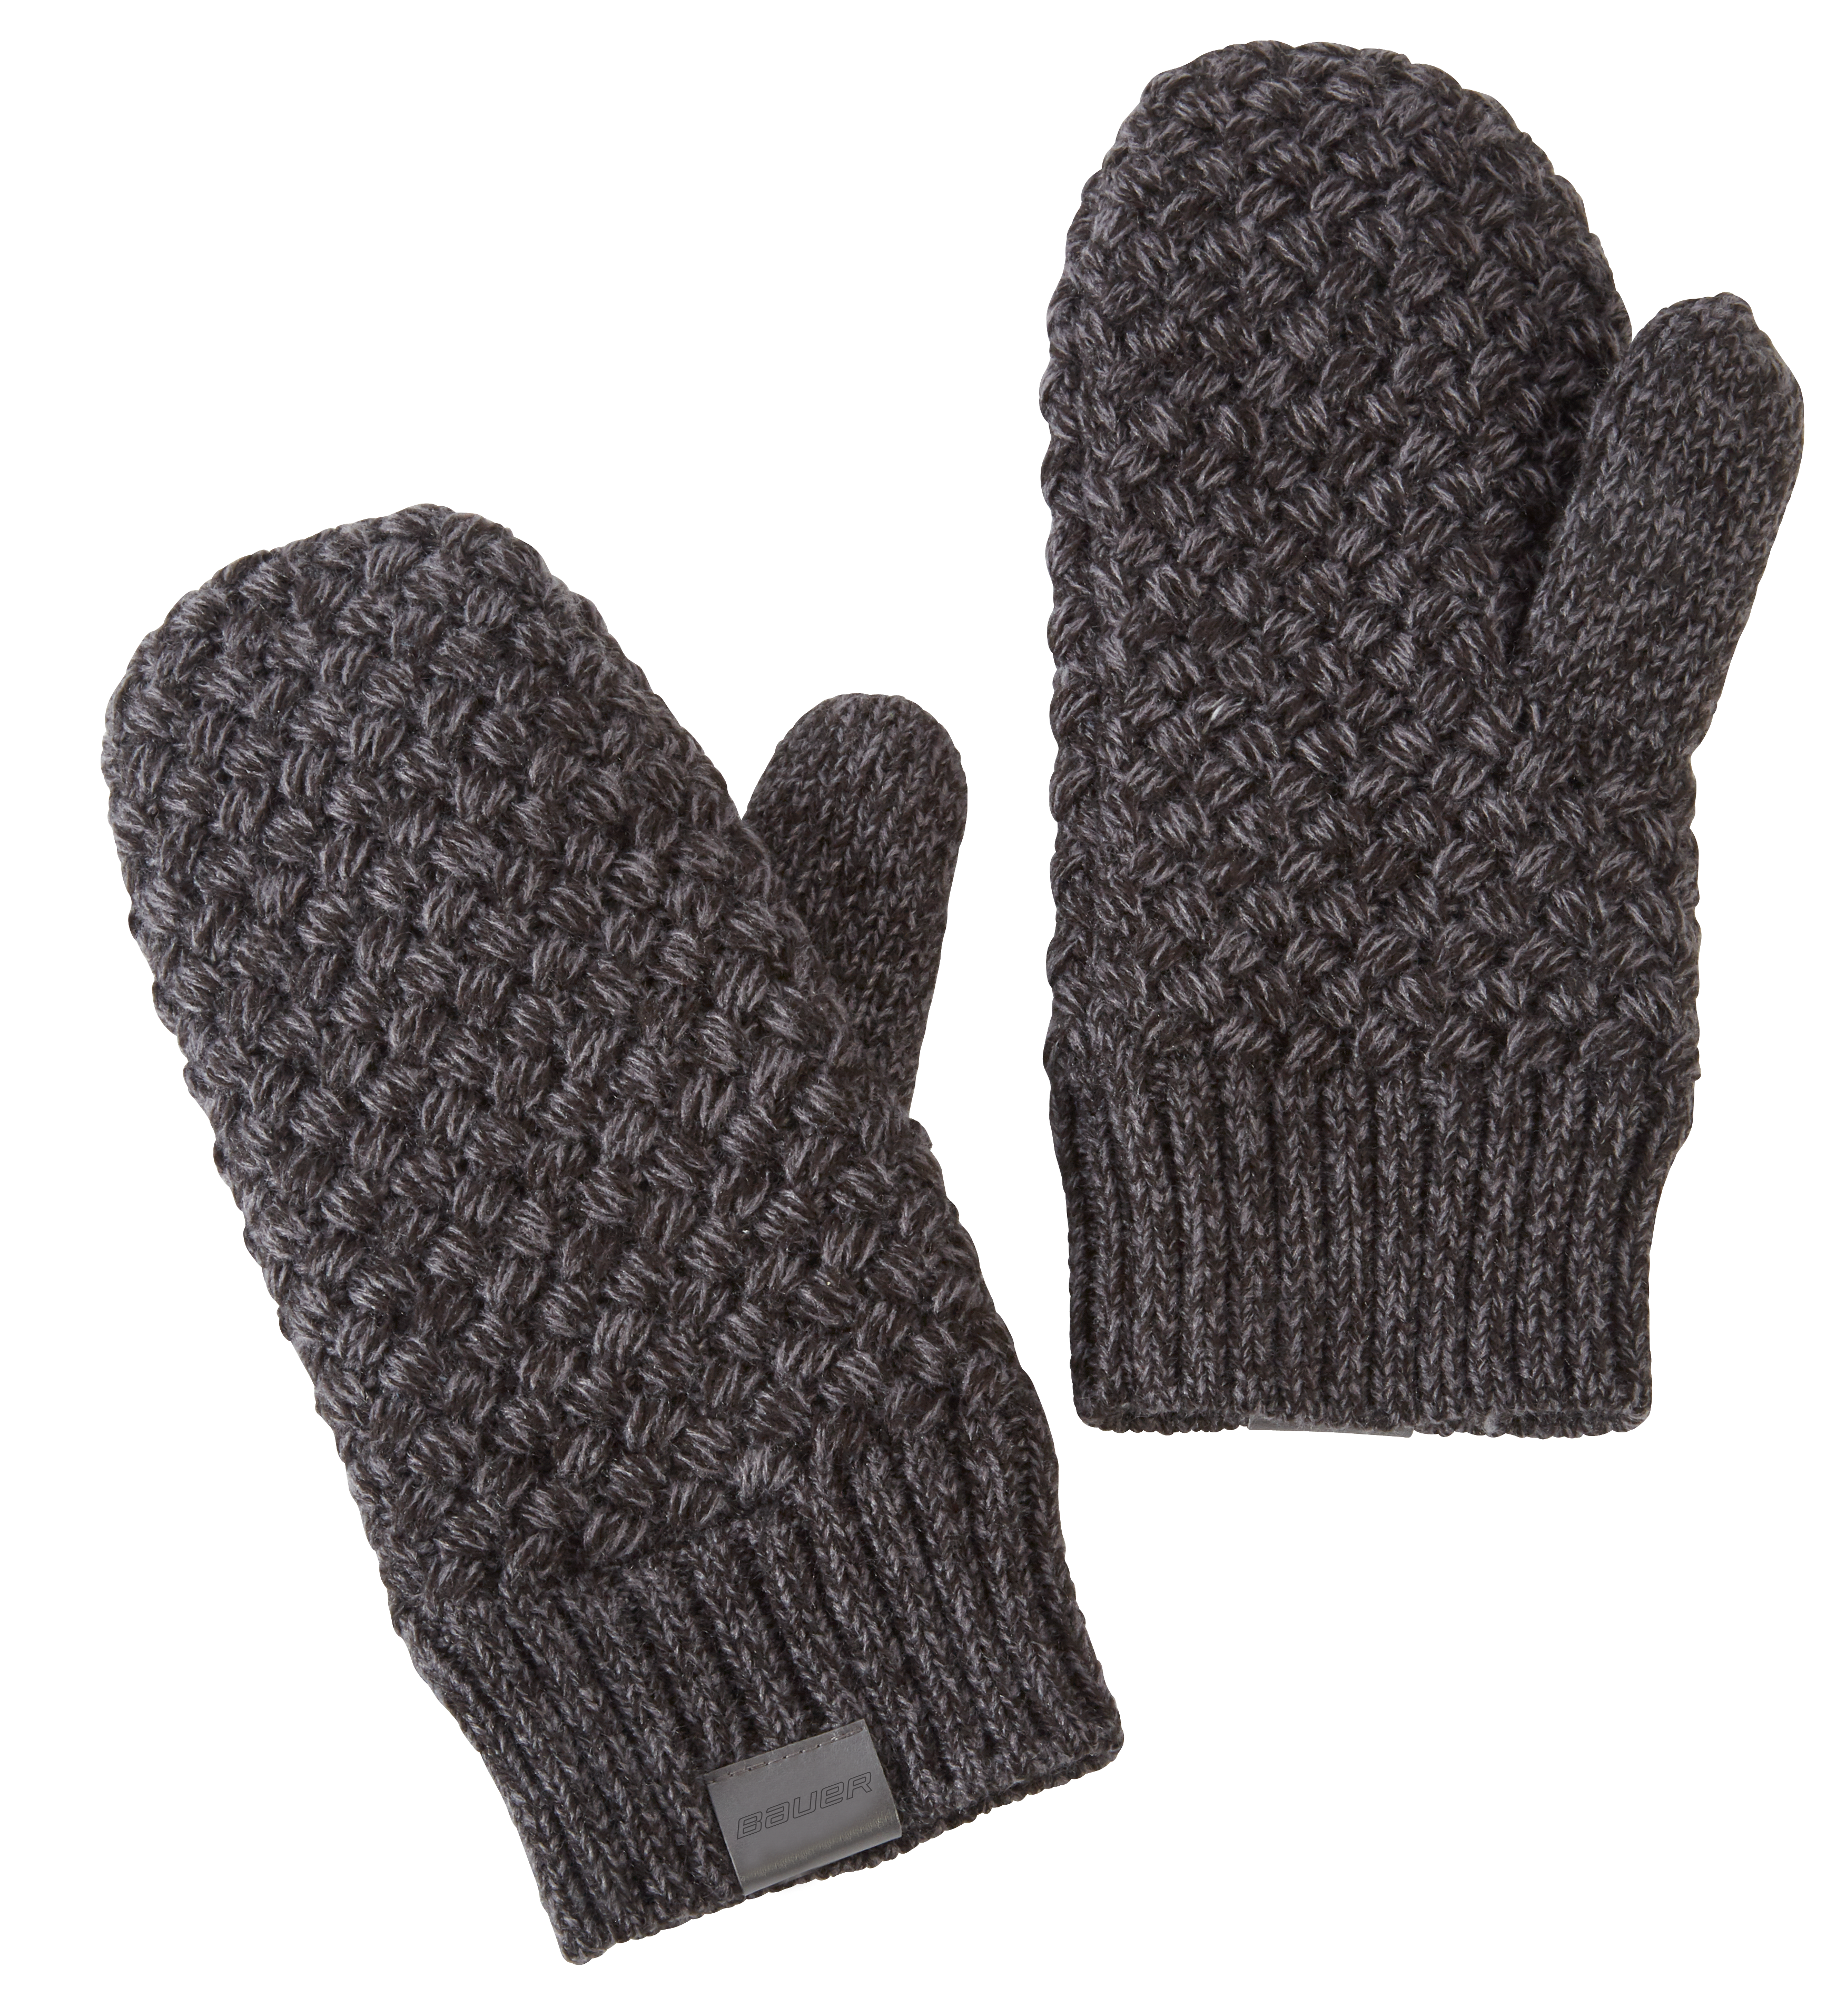 New Era® Zig Zag Knit Mittens Women's,,Размер M